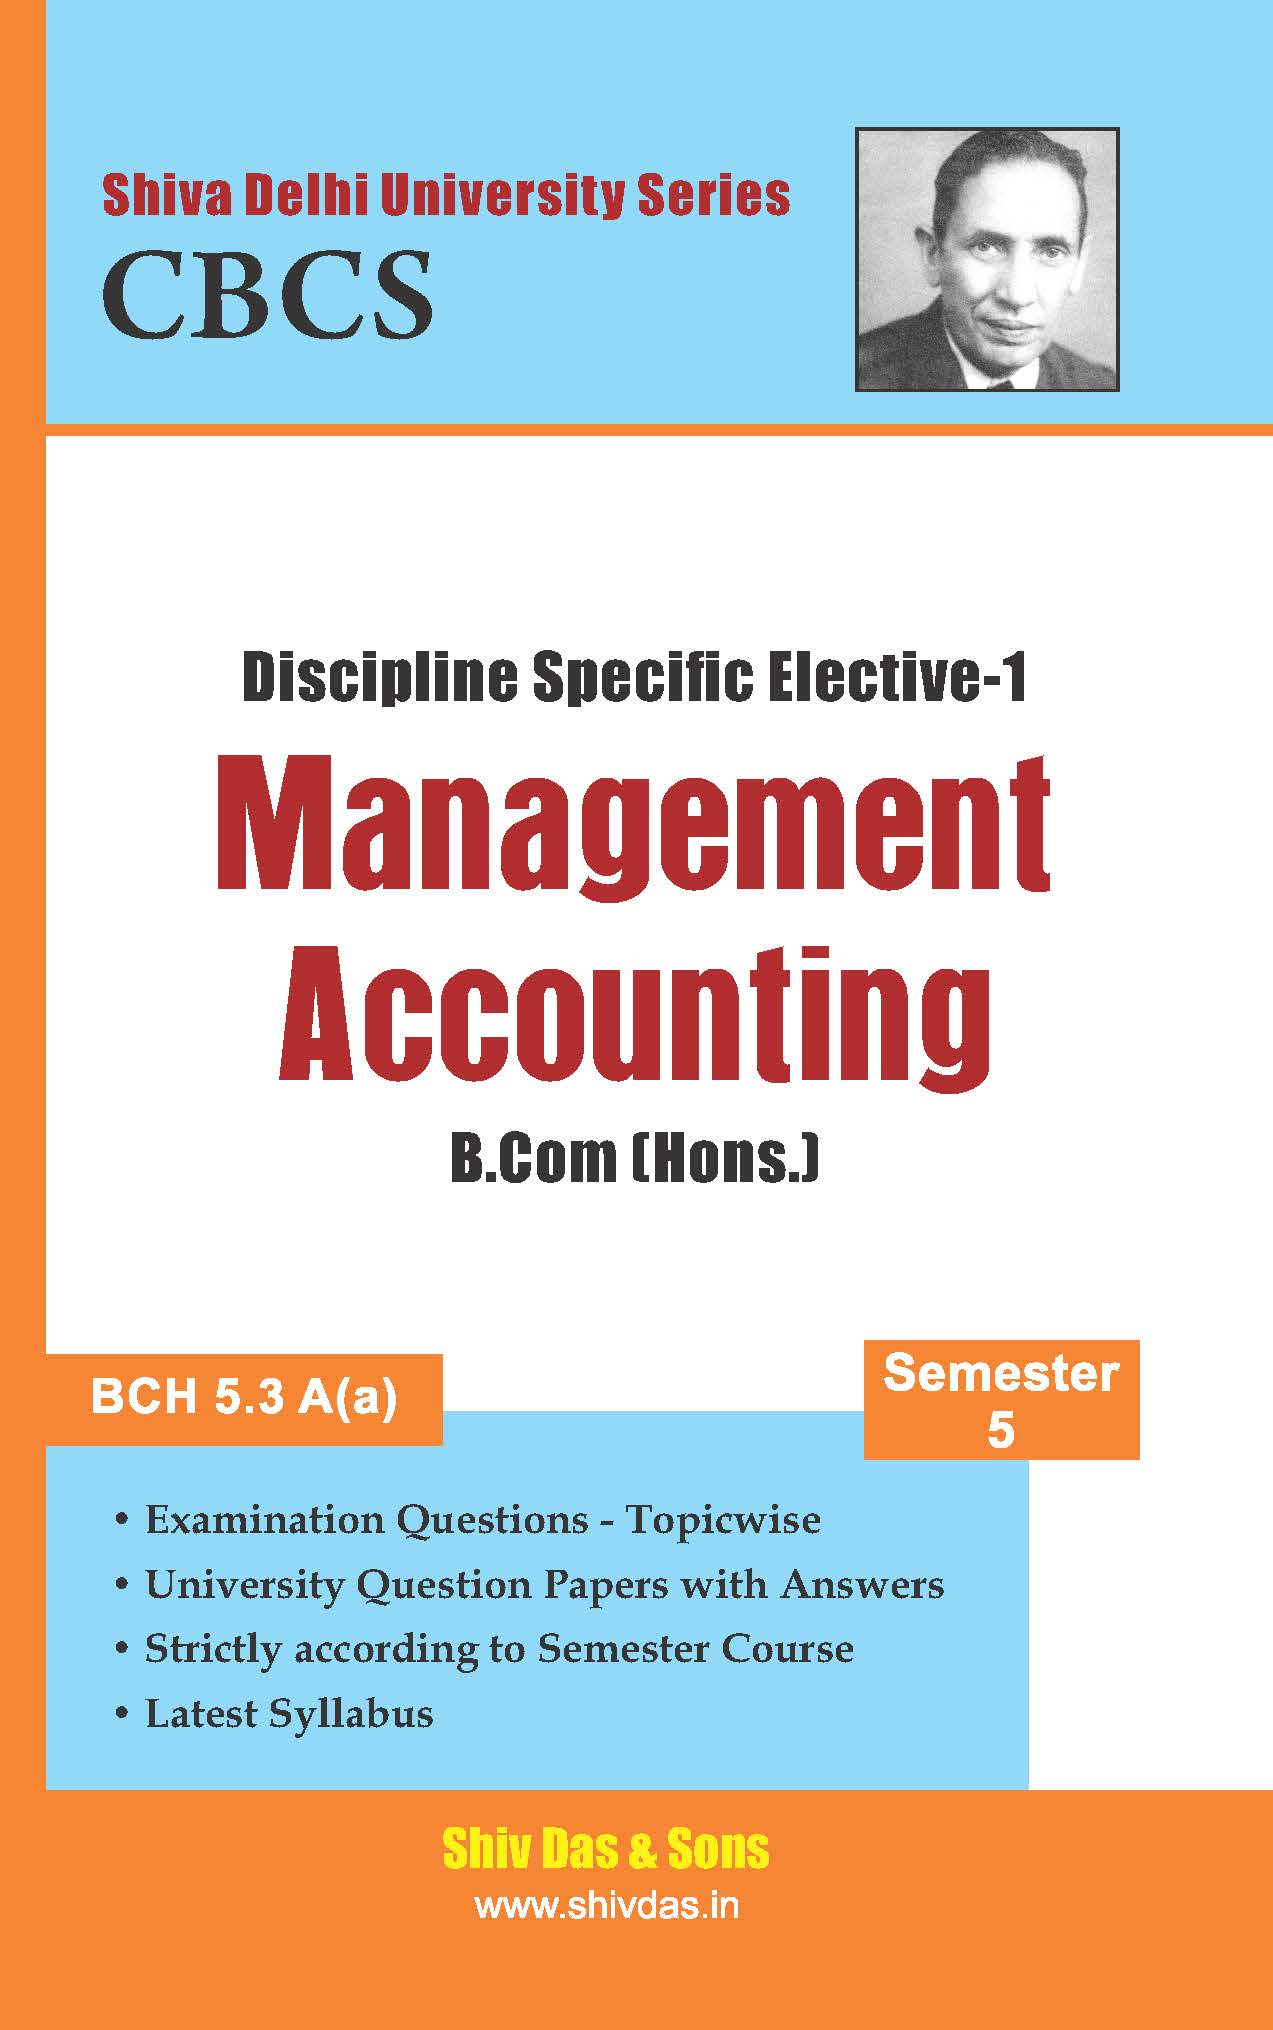 B.Com Hons. Semester- 5 Management Accounting